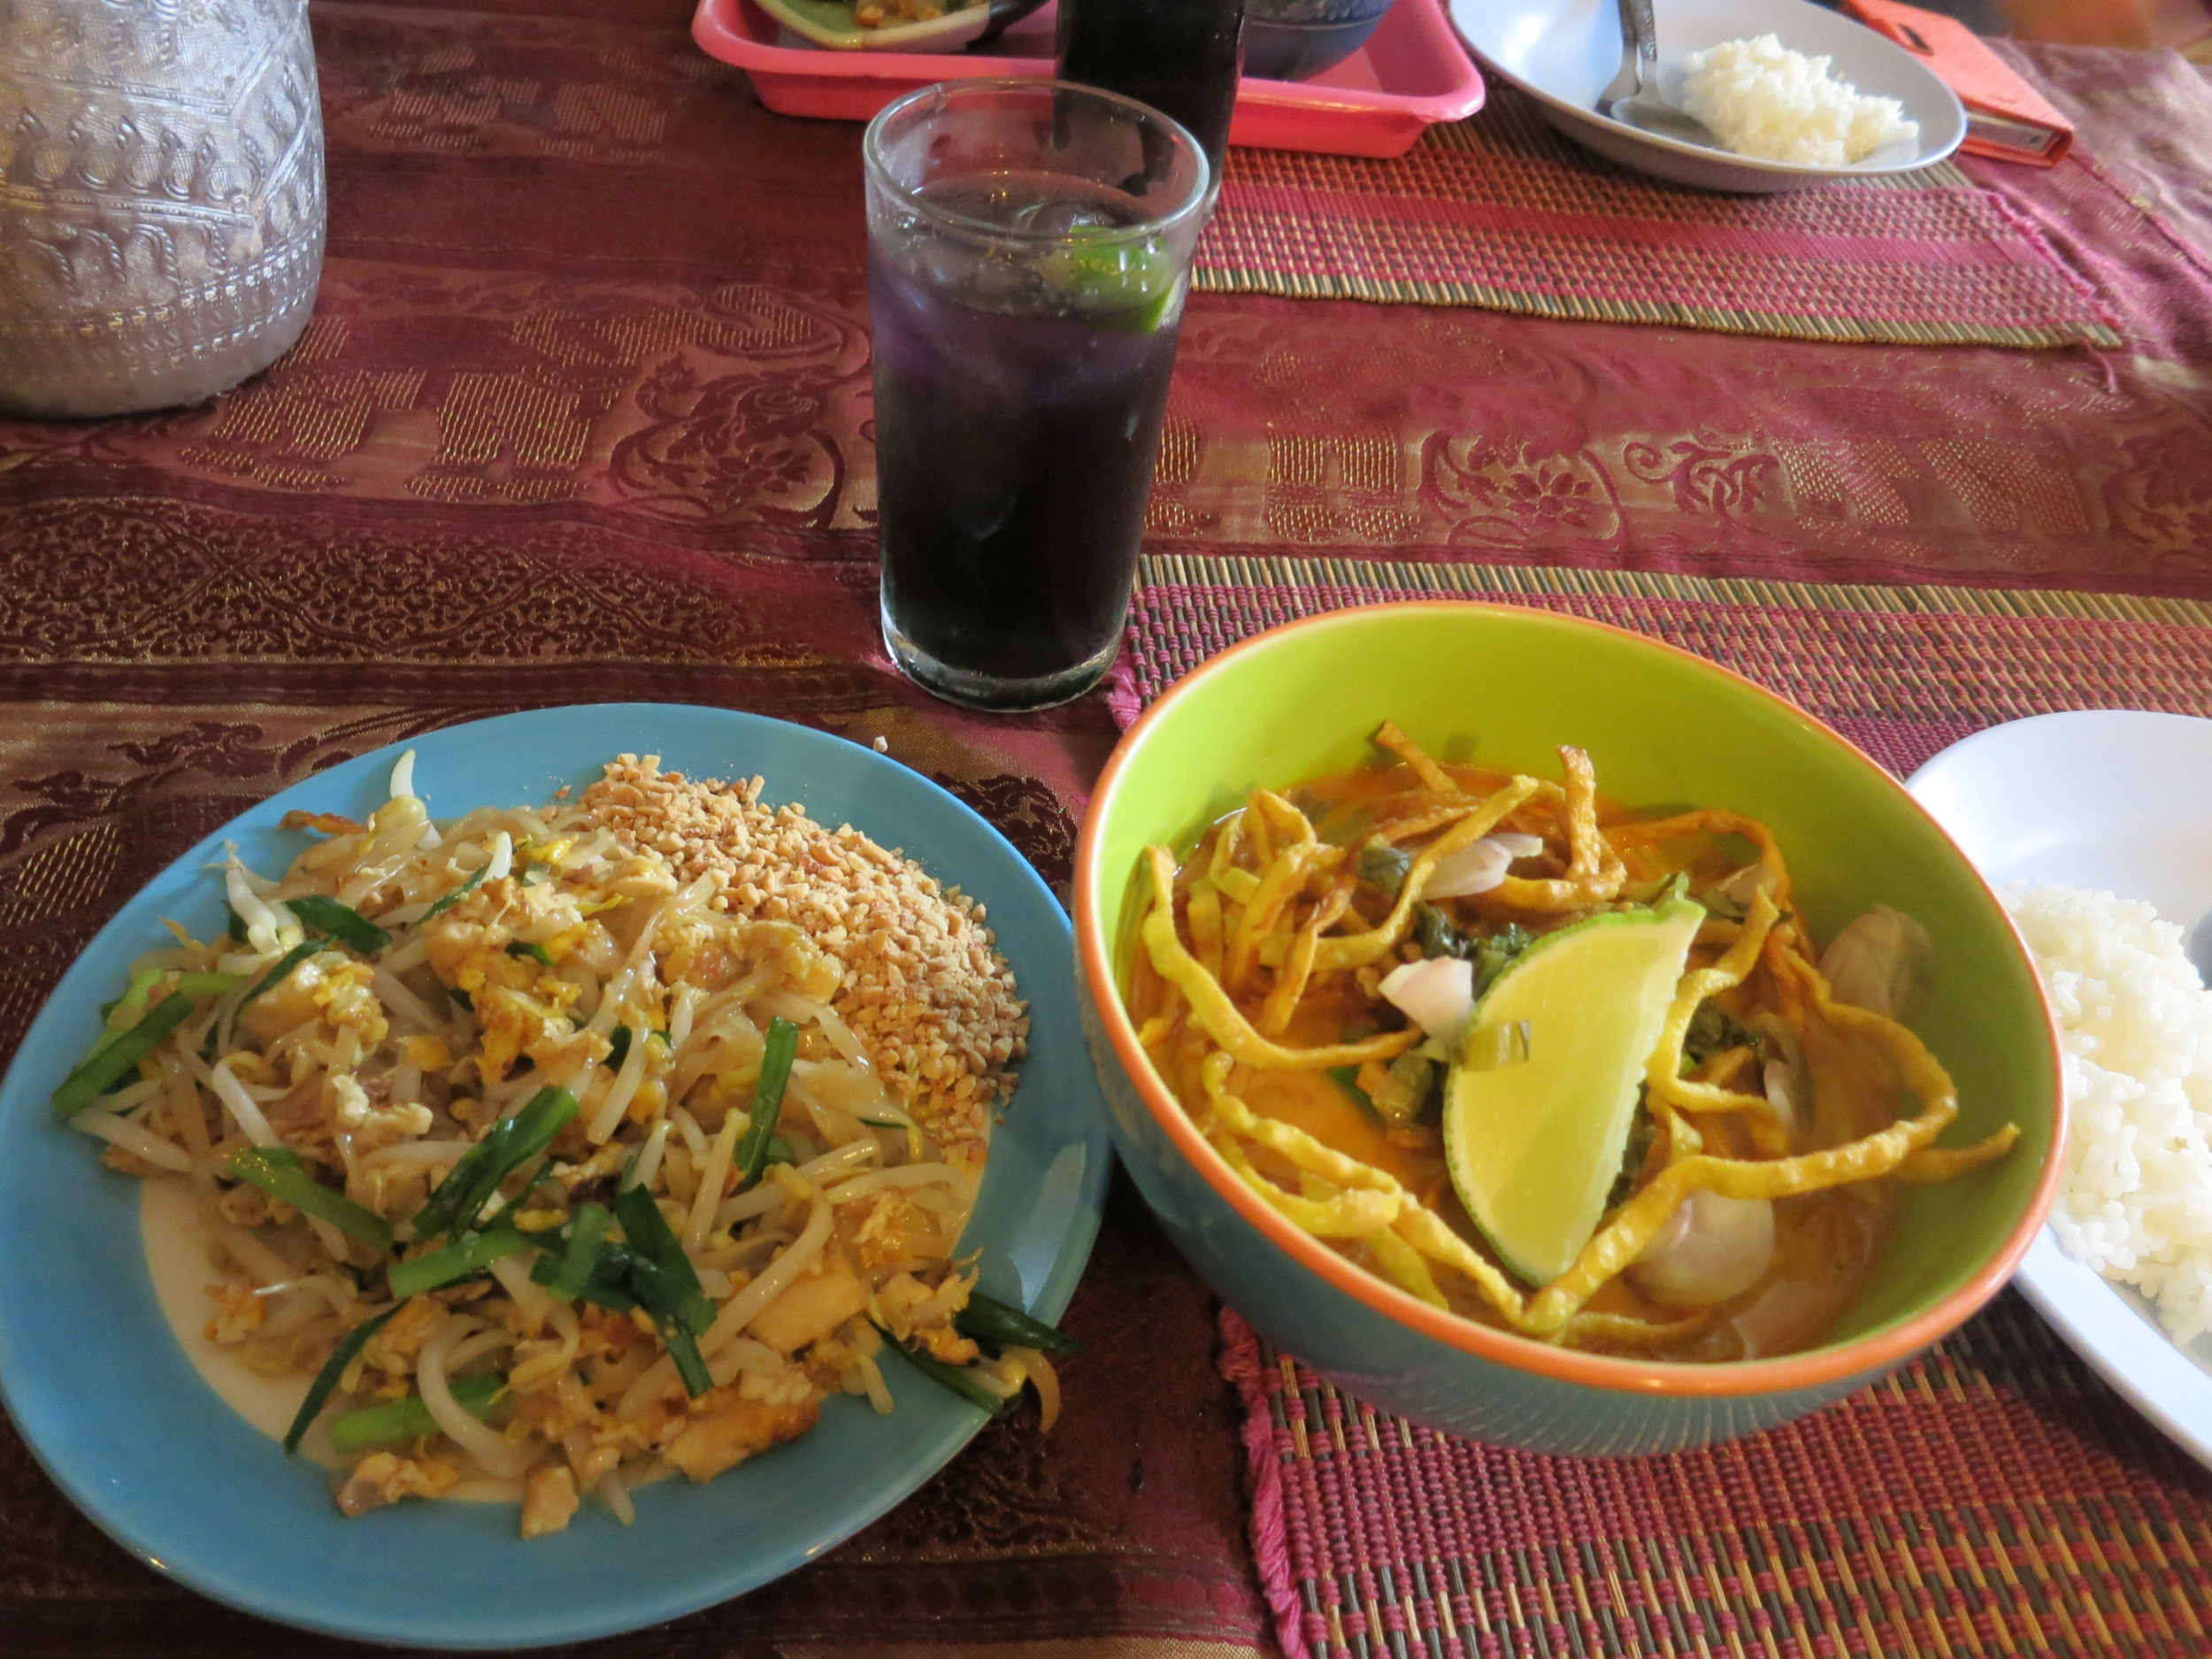 Phad thai and hot and spicy soup